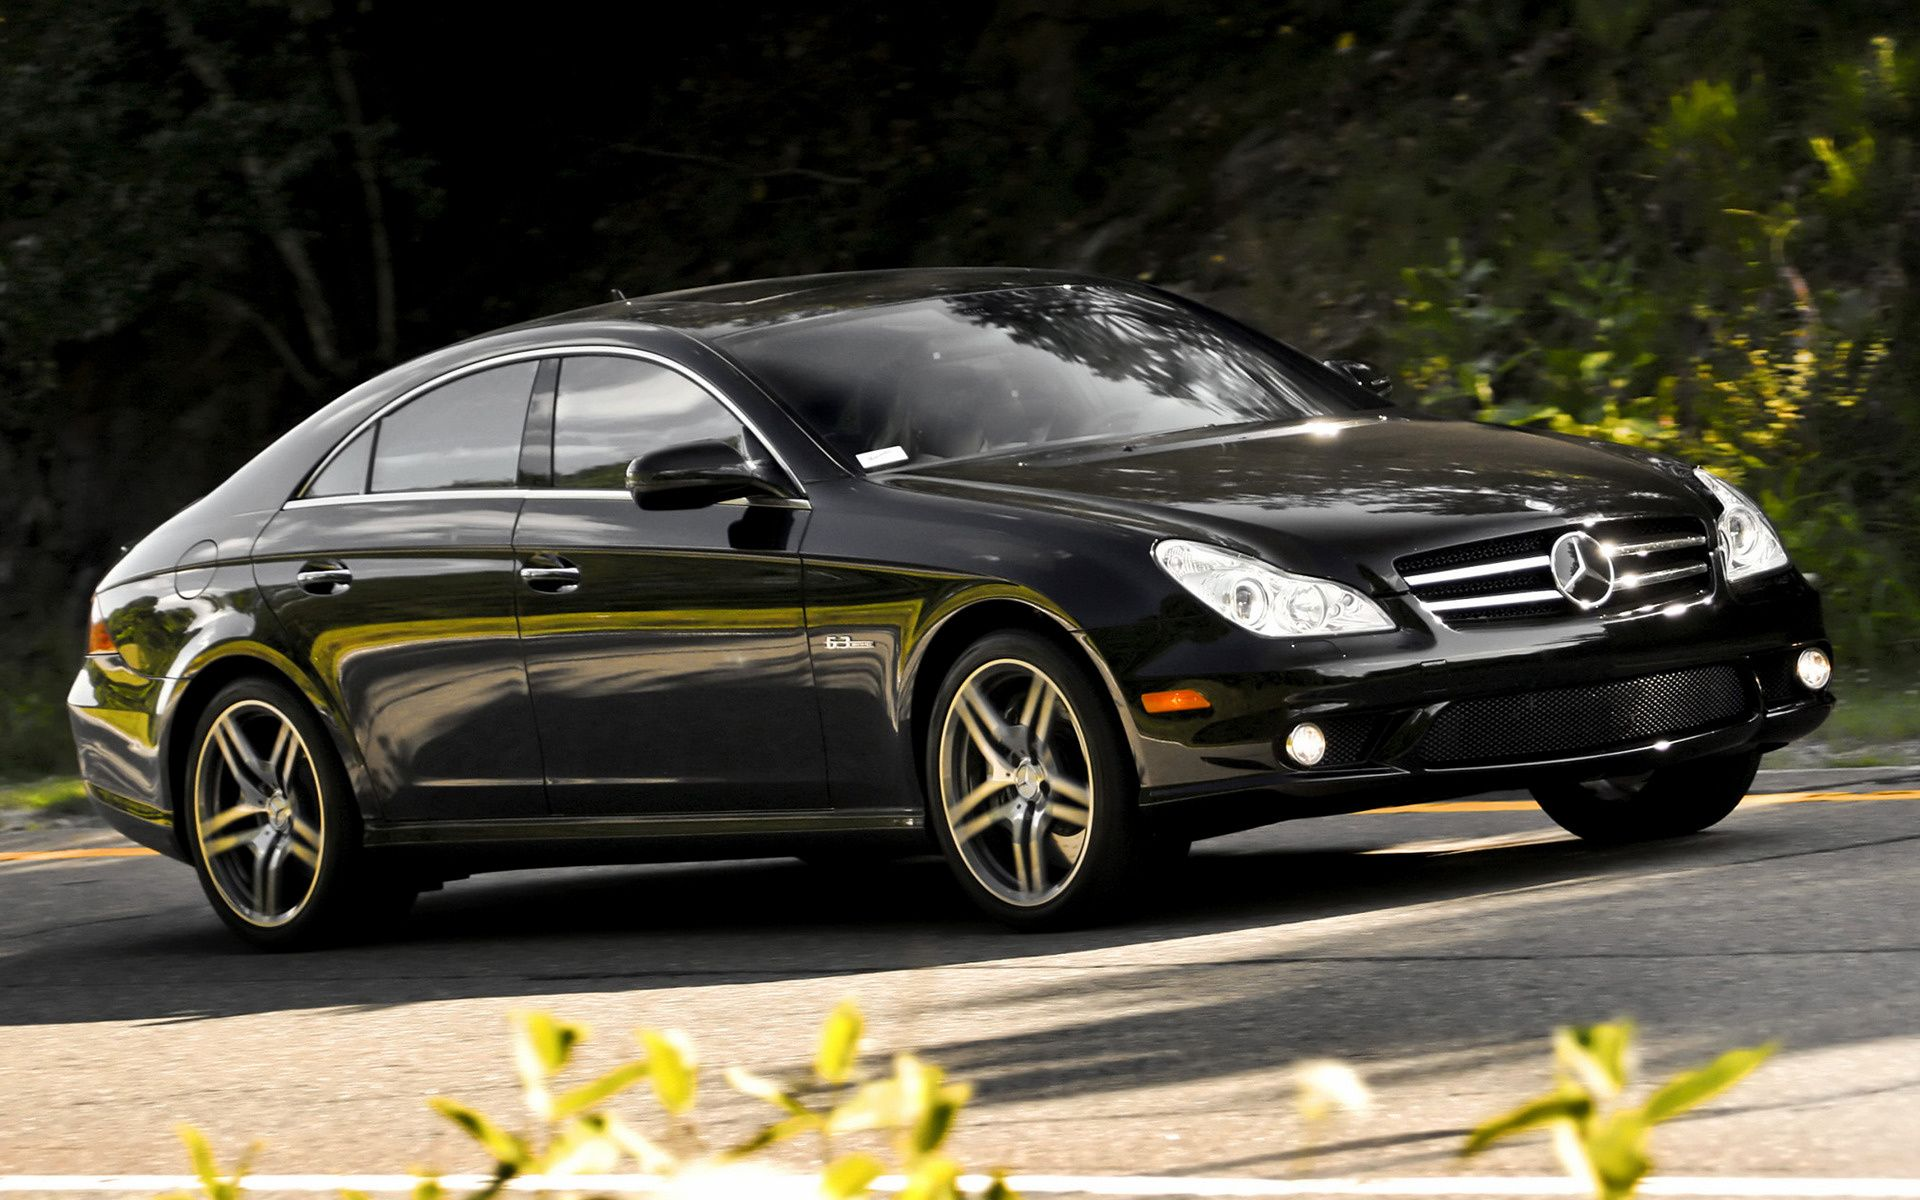 Mercedes Benz Cls 63 Amg 2008 Us Wallpapers And Hd Cls 63 Amg